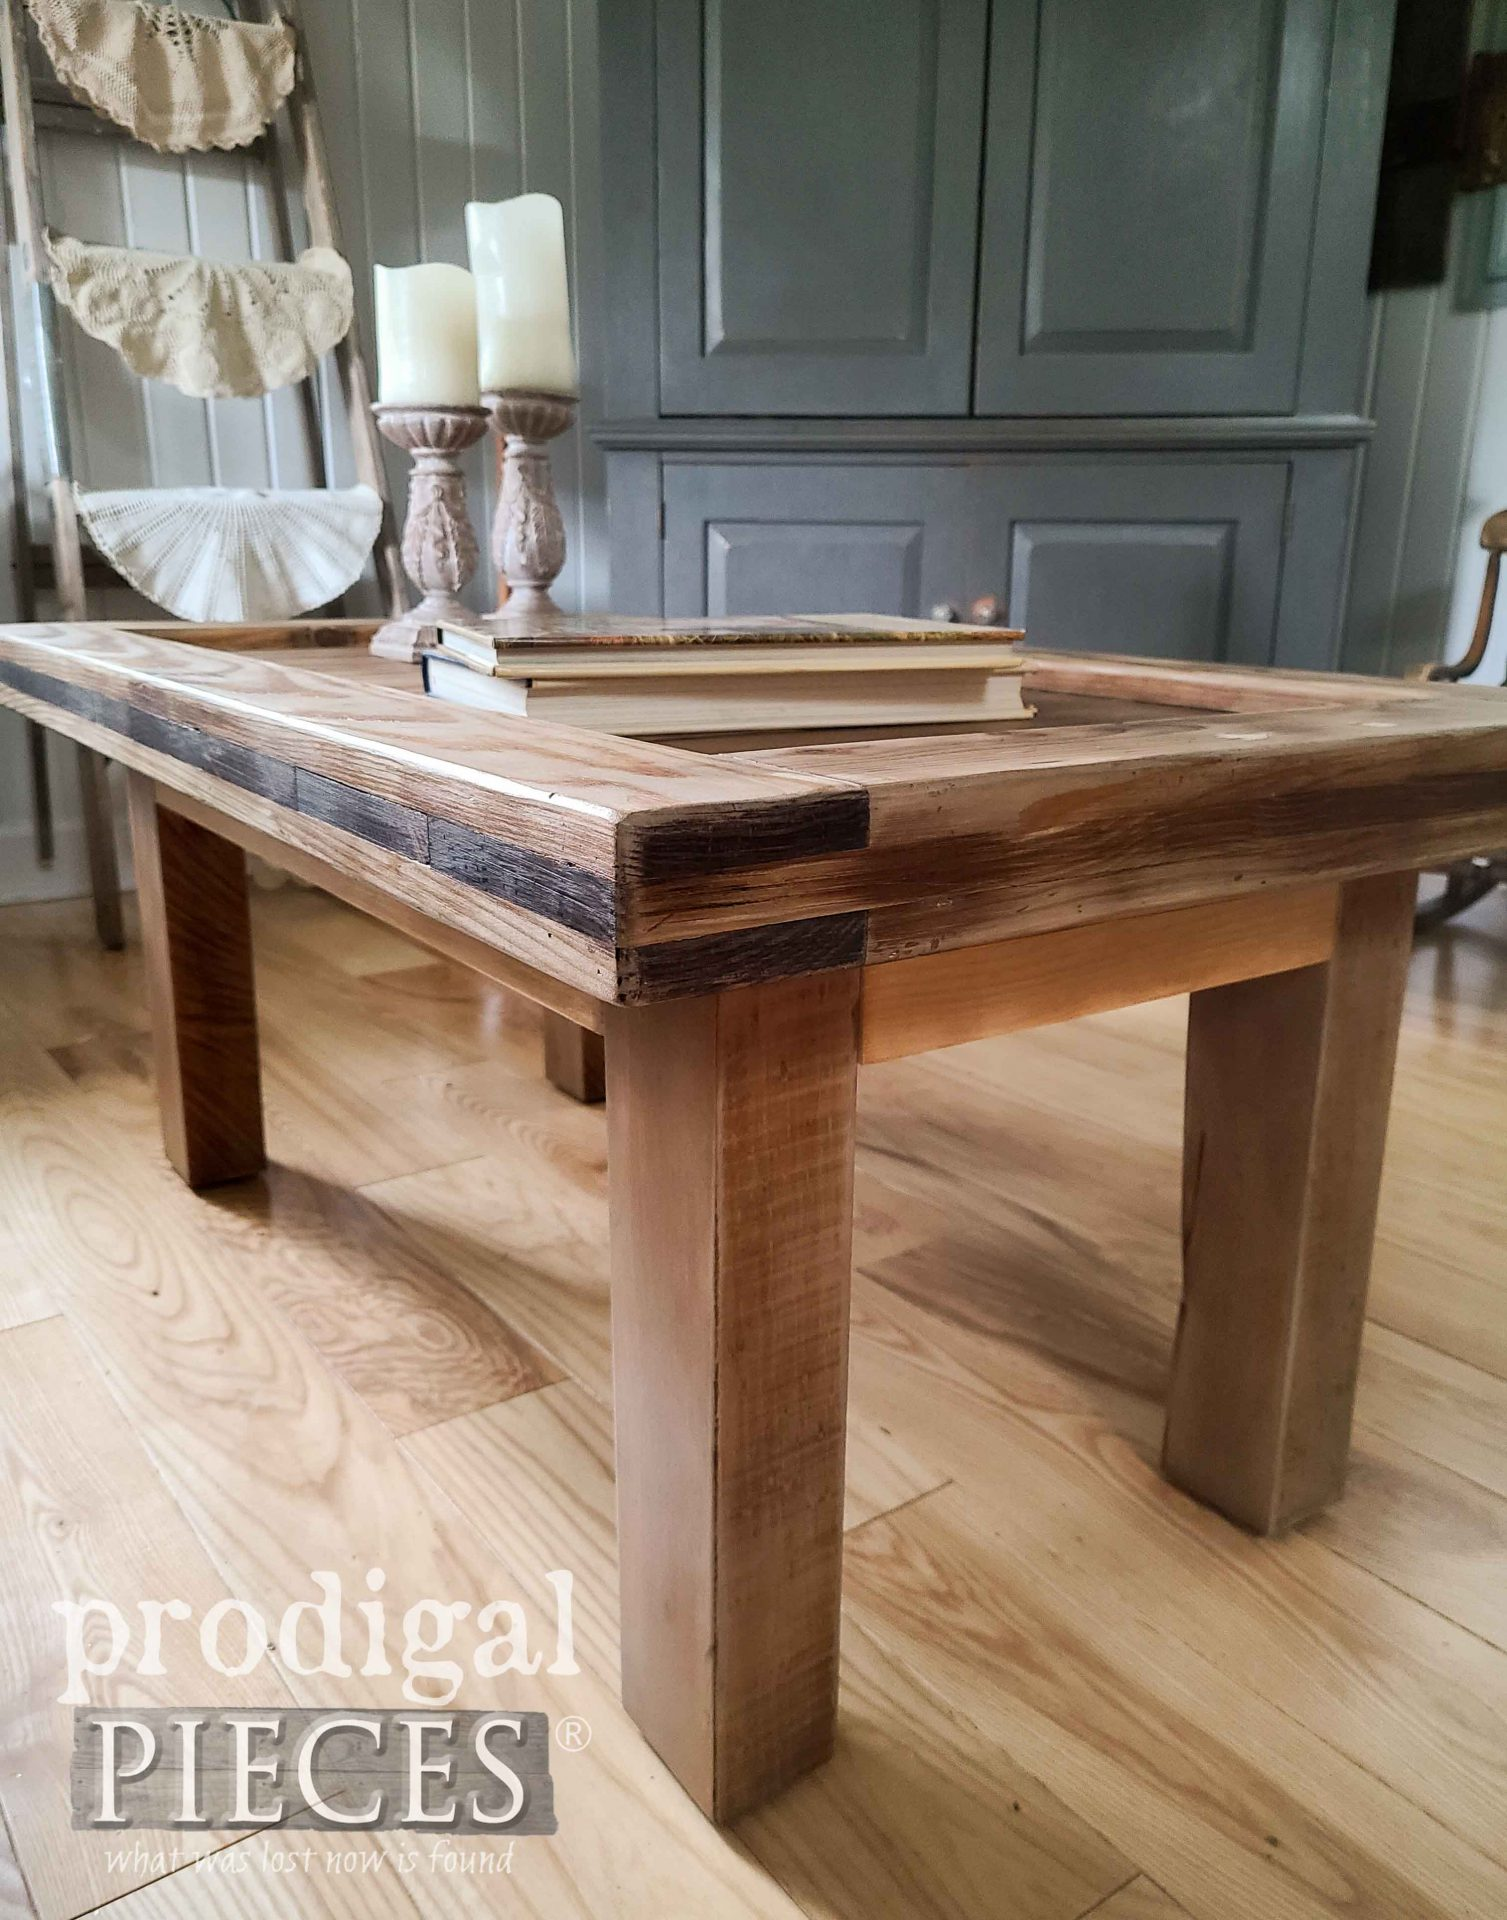 Farmhouse Coffee Table DIY by Prodigal Pieces | prodigalpieces.com #prodigalpieces #diy #furniture